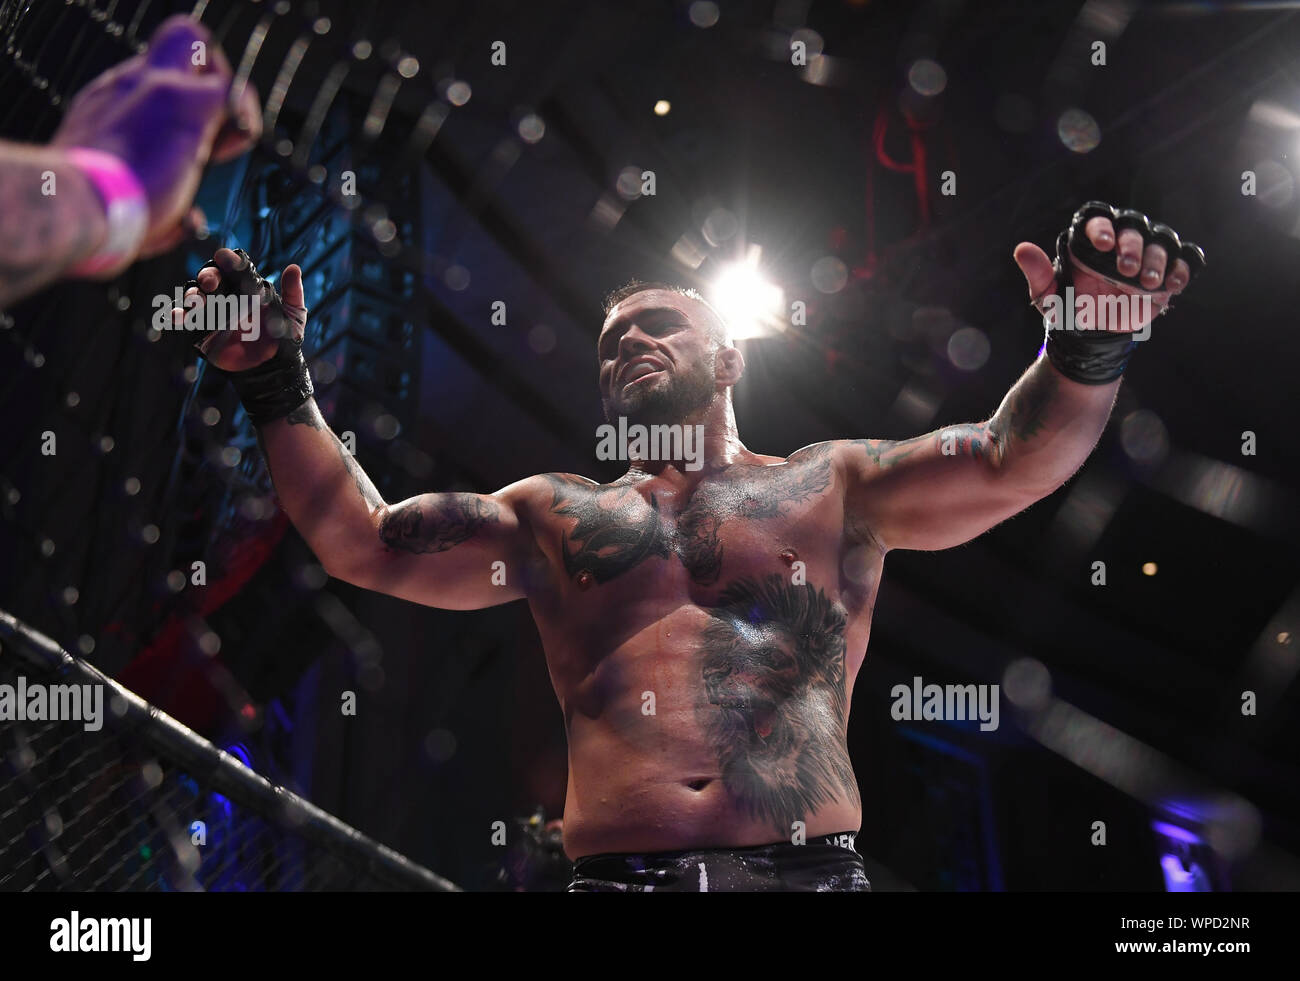 London, UK. 08th Sep, 2019. Troxy, London, England; UCMMA 60; Matthew Holland versus Alin Chirila in the  MMA 77KG Title fight, Alin Chirila celebrates winning his bout - Editorial Use Only. Credit: Action Plus Sports Images/Alamy Live News Stock Photo